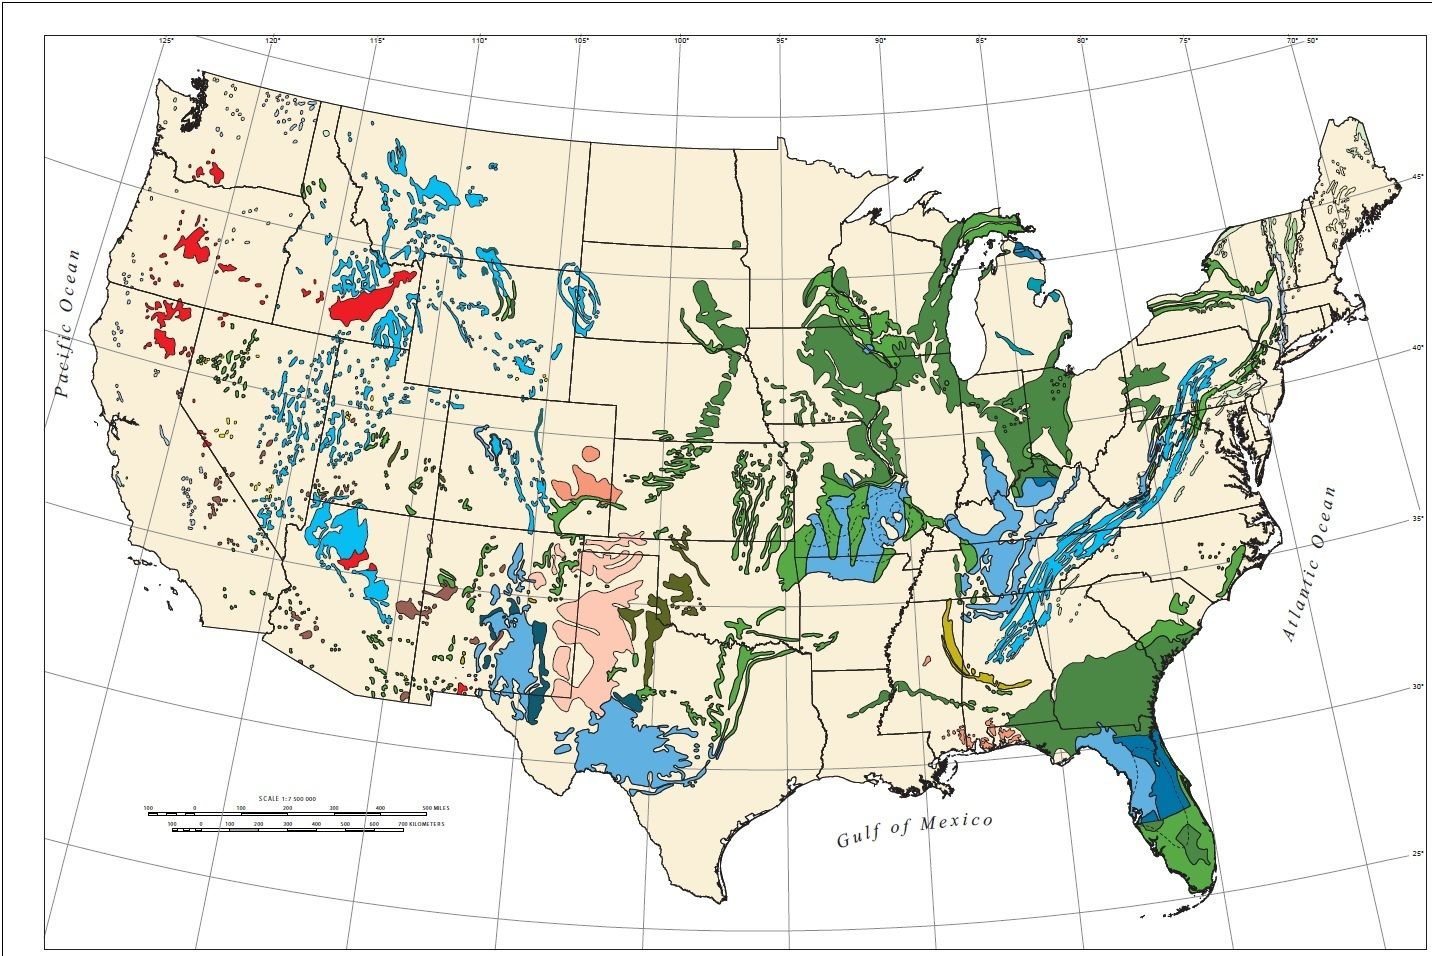 US Sinkhole Map Map Of Sinkholes In The US These Maps Show That - Map of us volcanoes